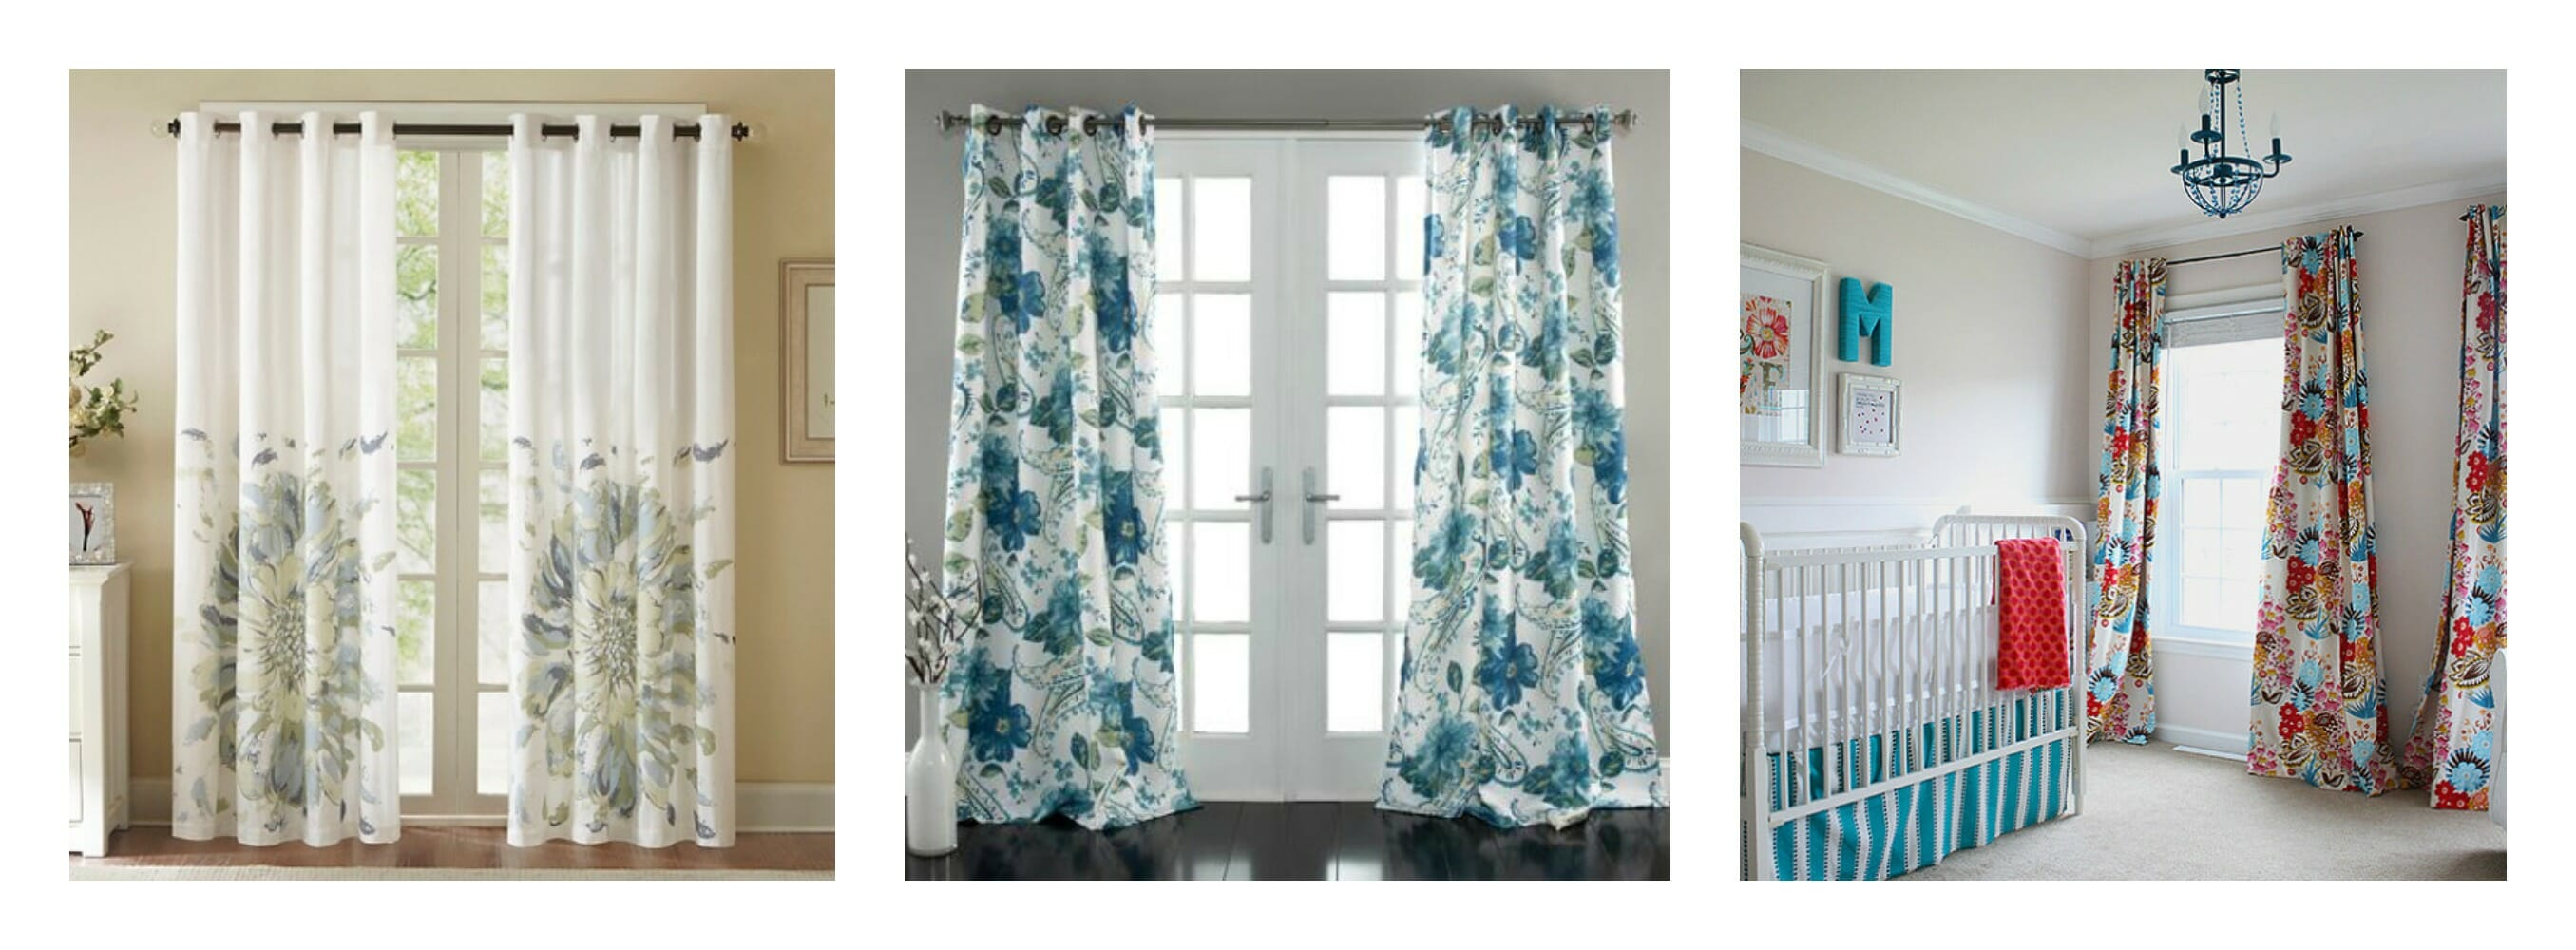 15 Places You Wouldn\'t Think To Buy Curtains - Modernize